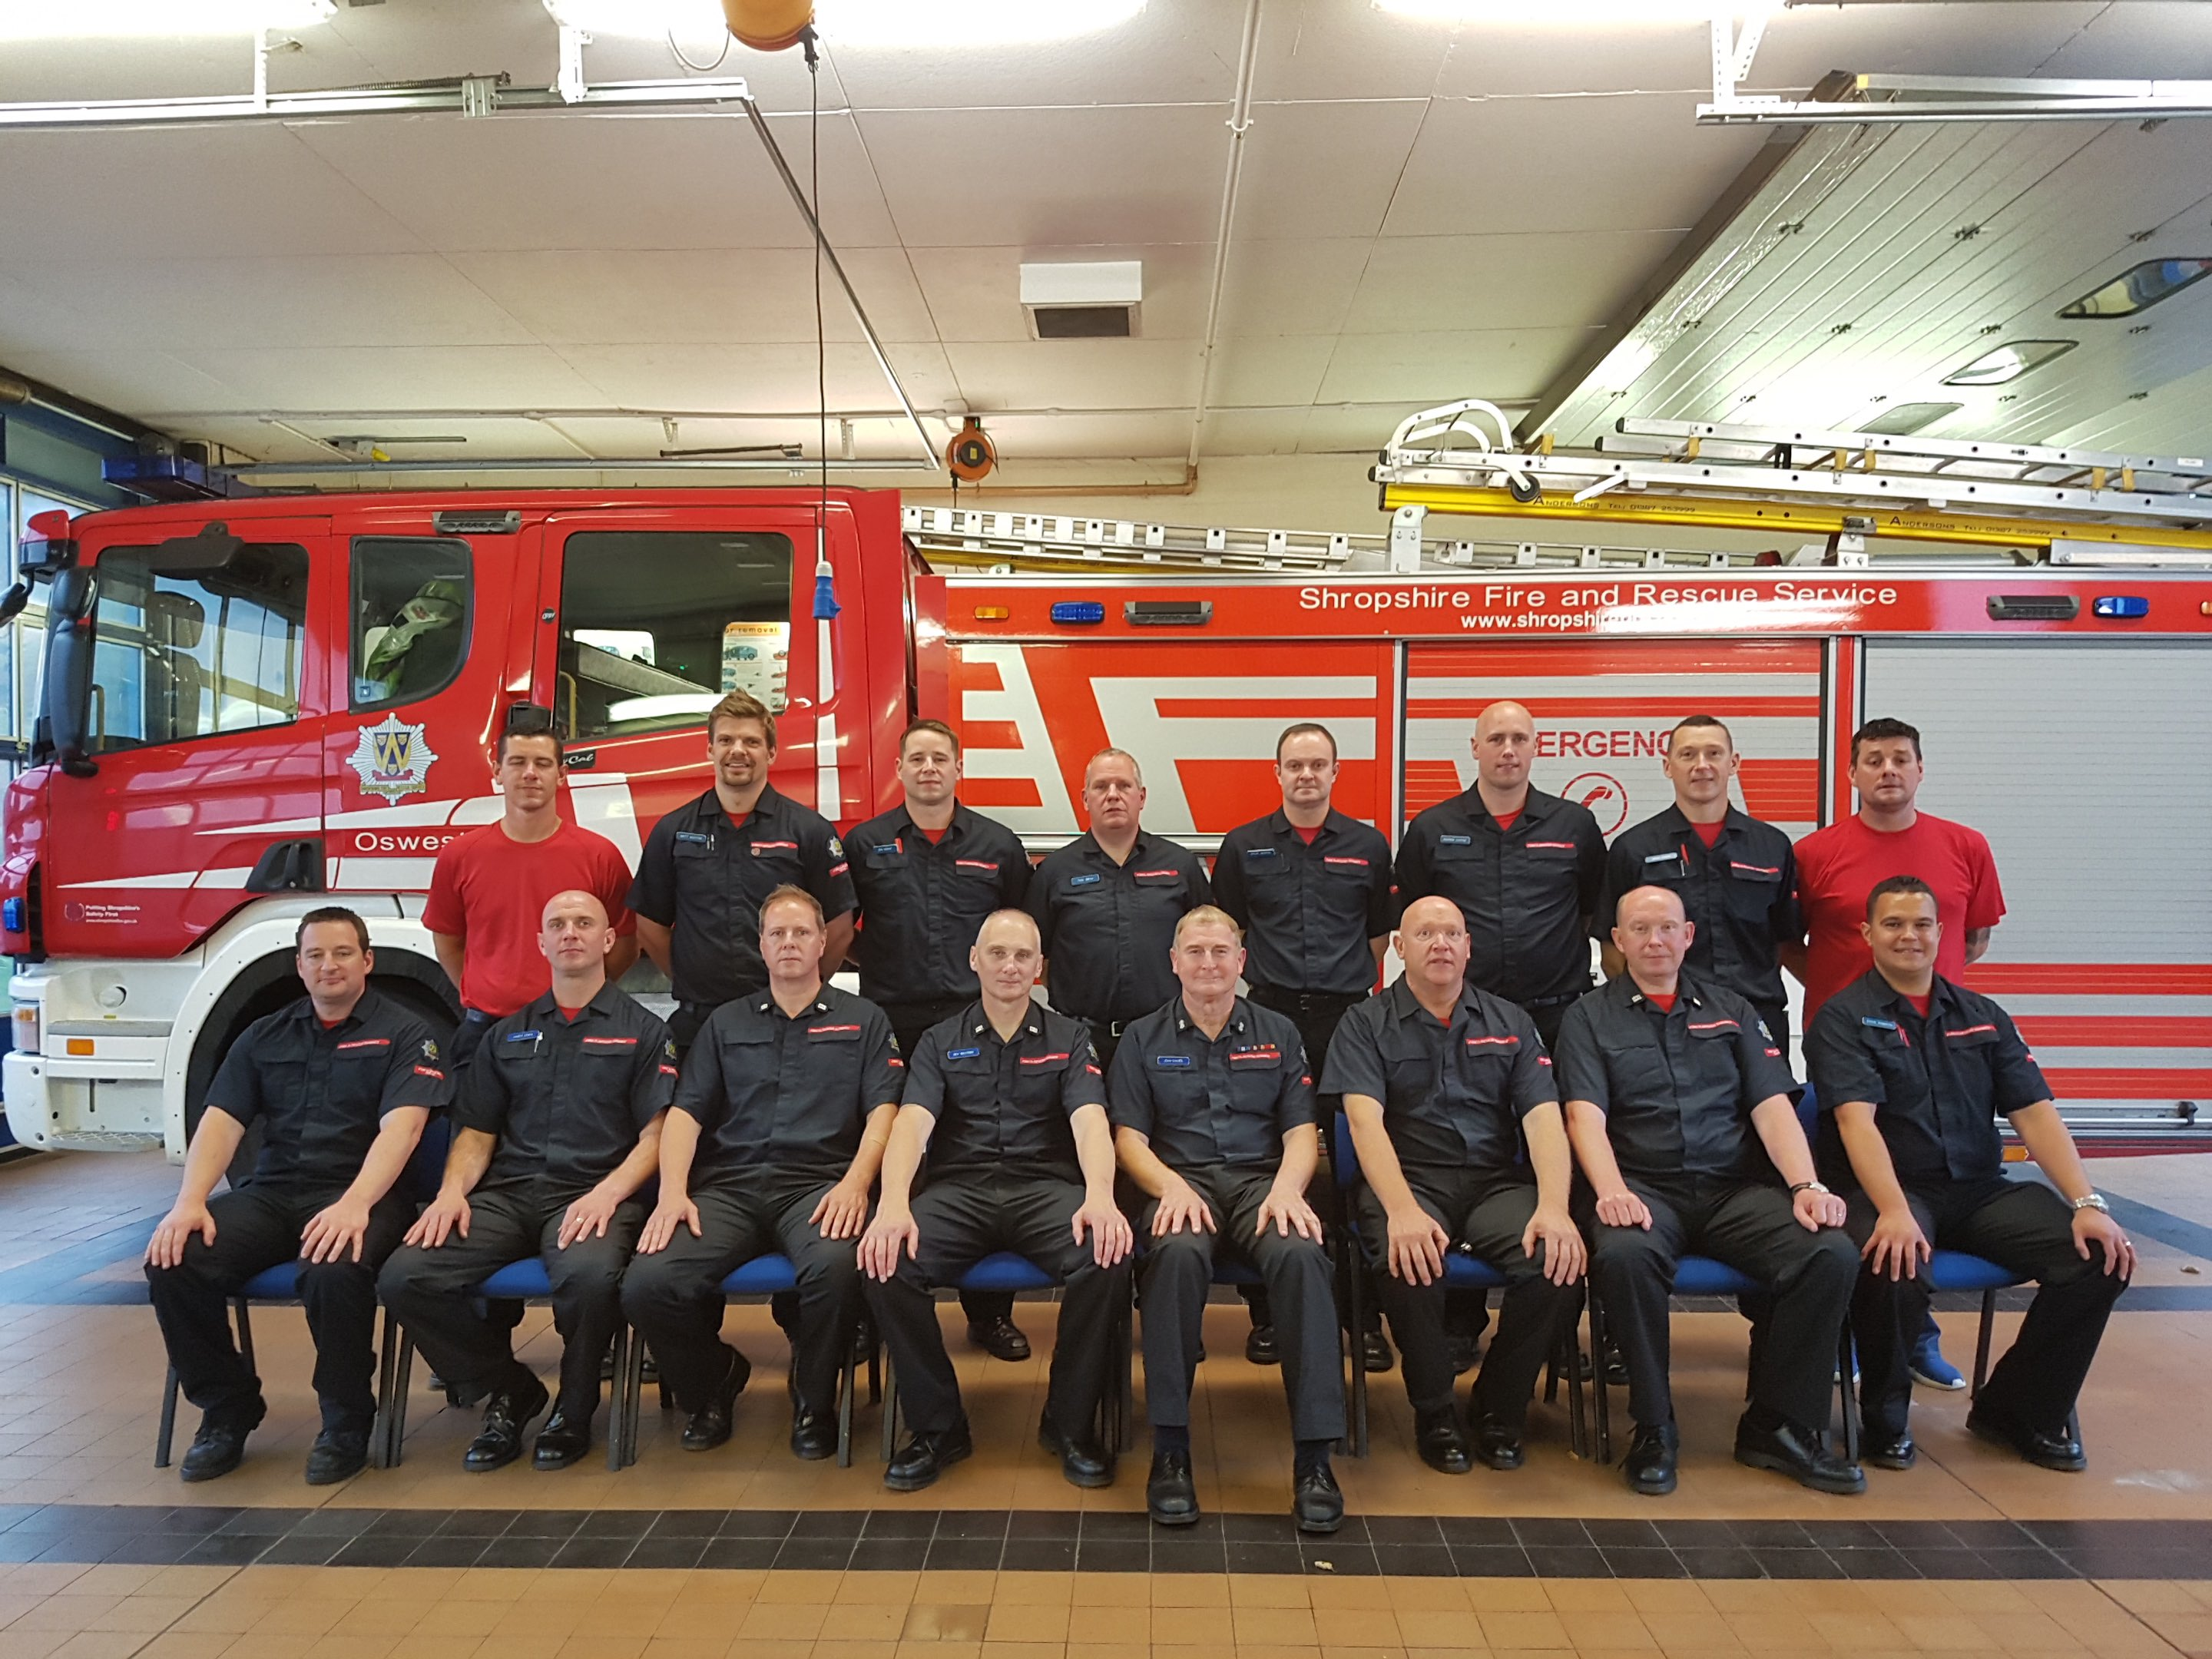 Oswestry Watch Manager John Davies (fourth from right front row) retires after a 33 year career as an on call firefighter. PIctured with the Oswestry crew.